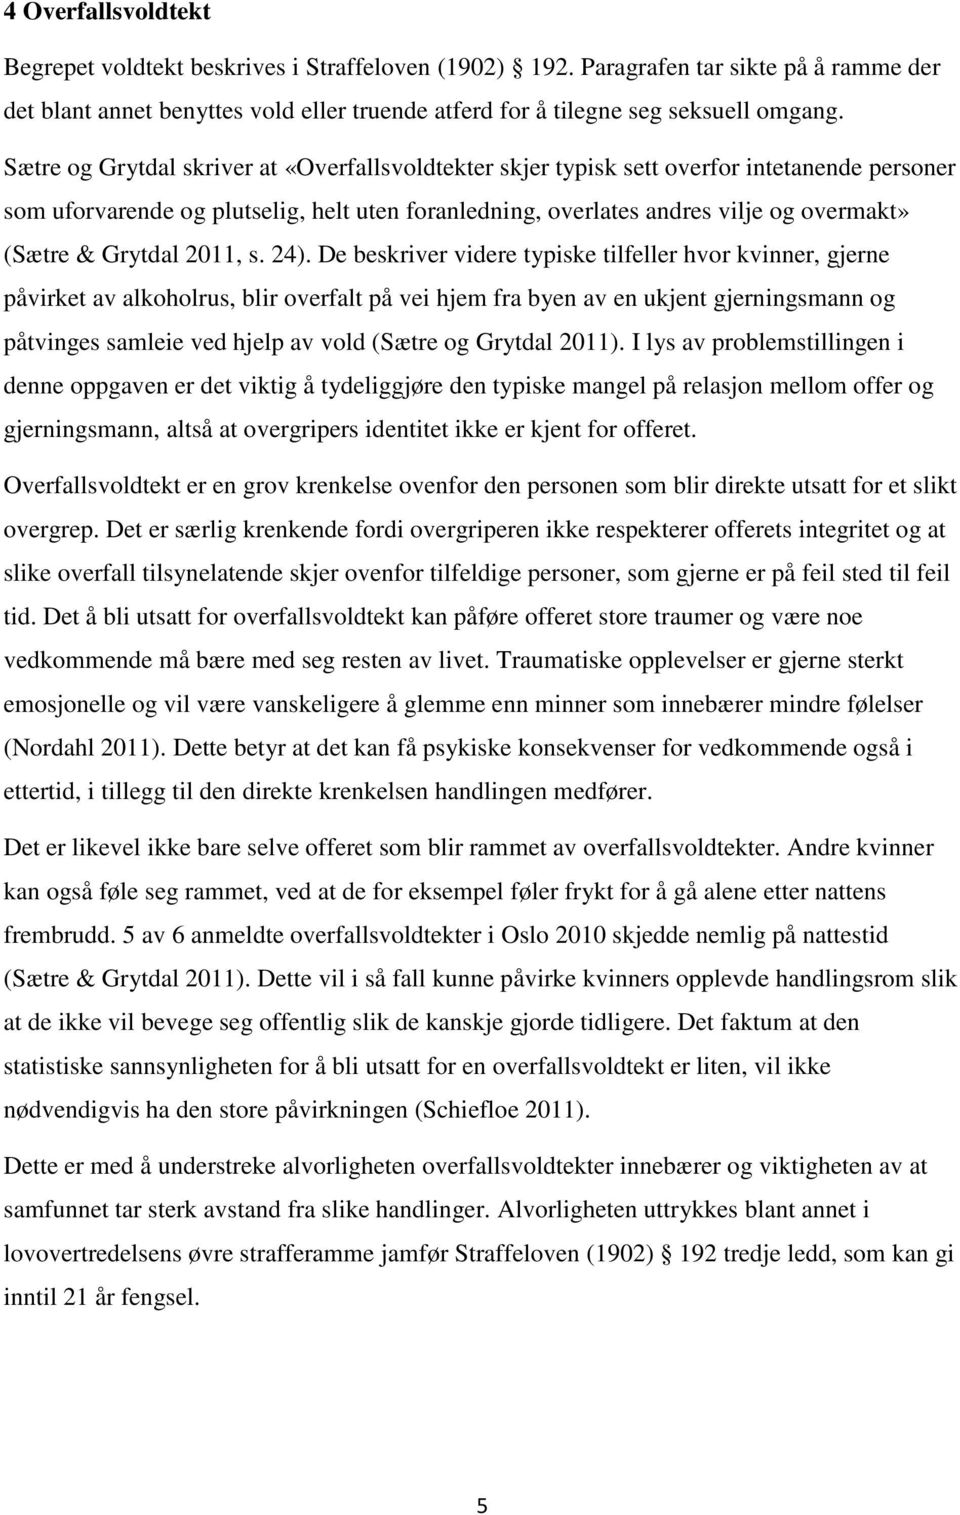 Grytdal 2011, s. 24).